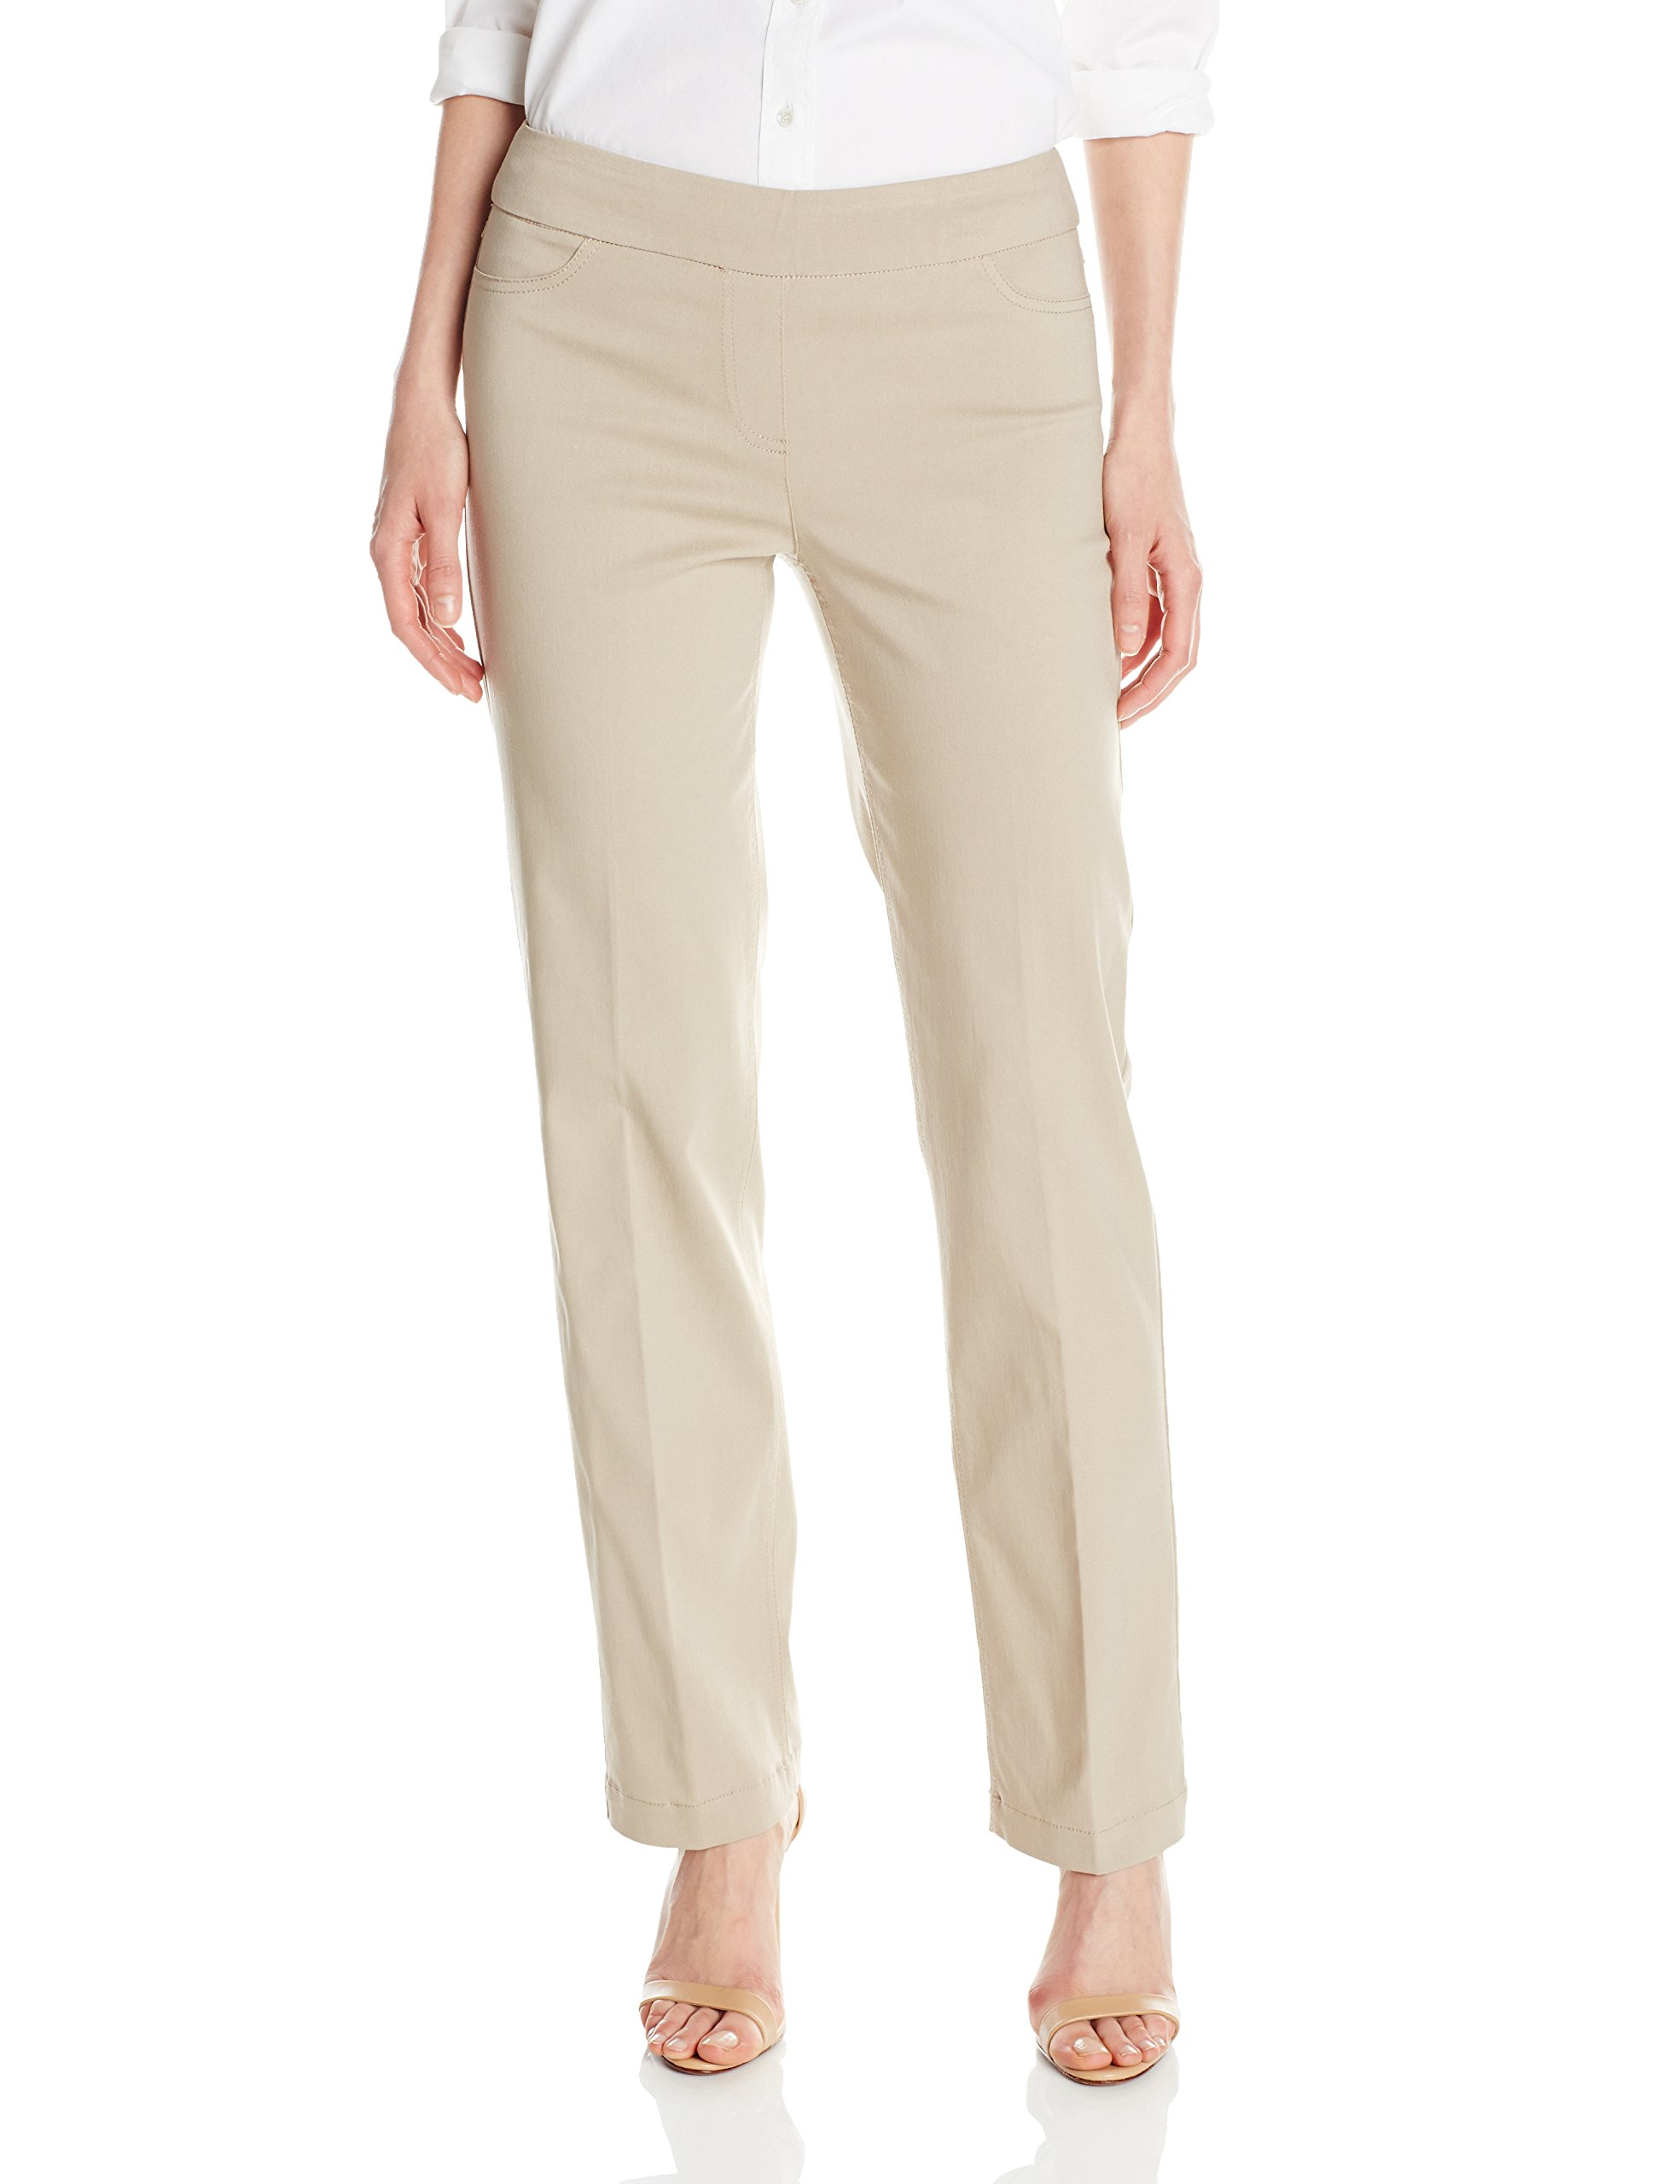 SLIM-SATION Women's Wide Band Pull-On Relaxed Leg Pant with Tummy Control, Stone, 10